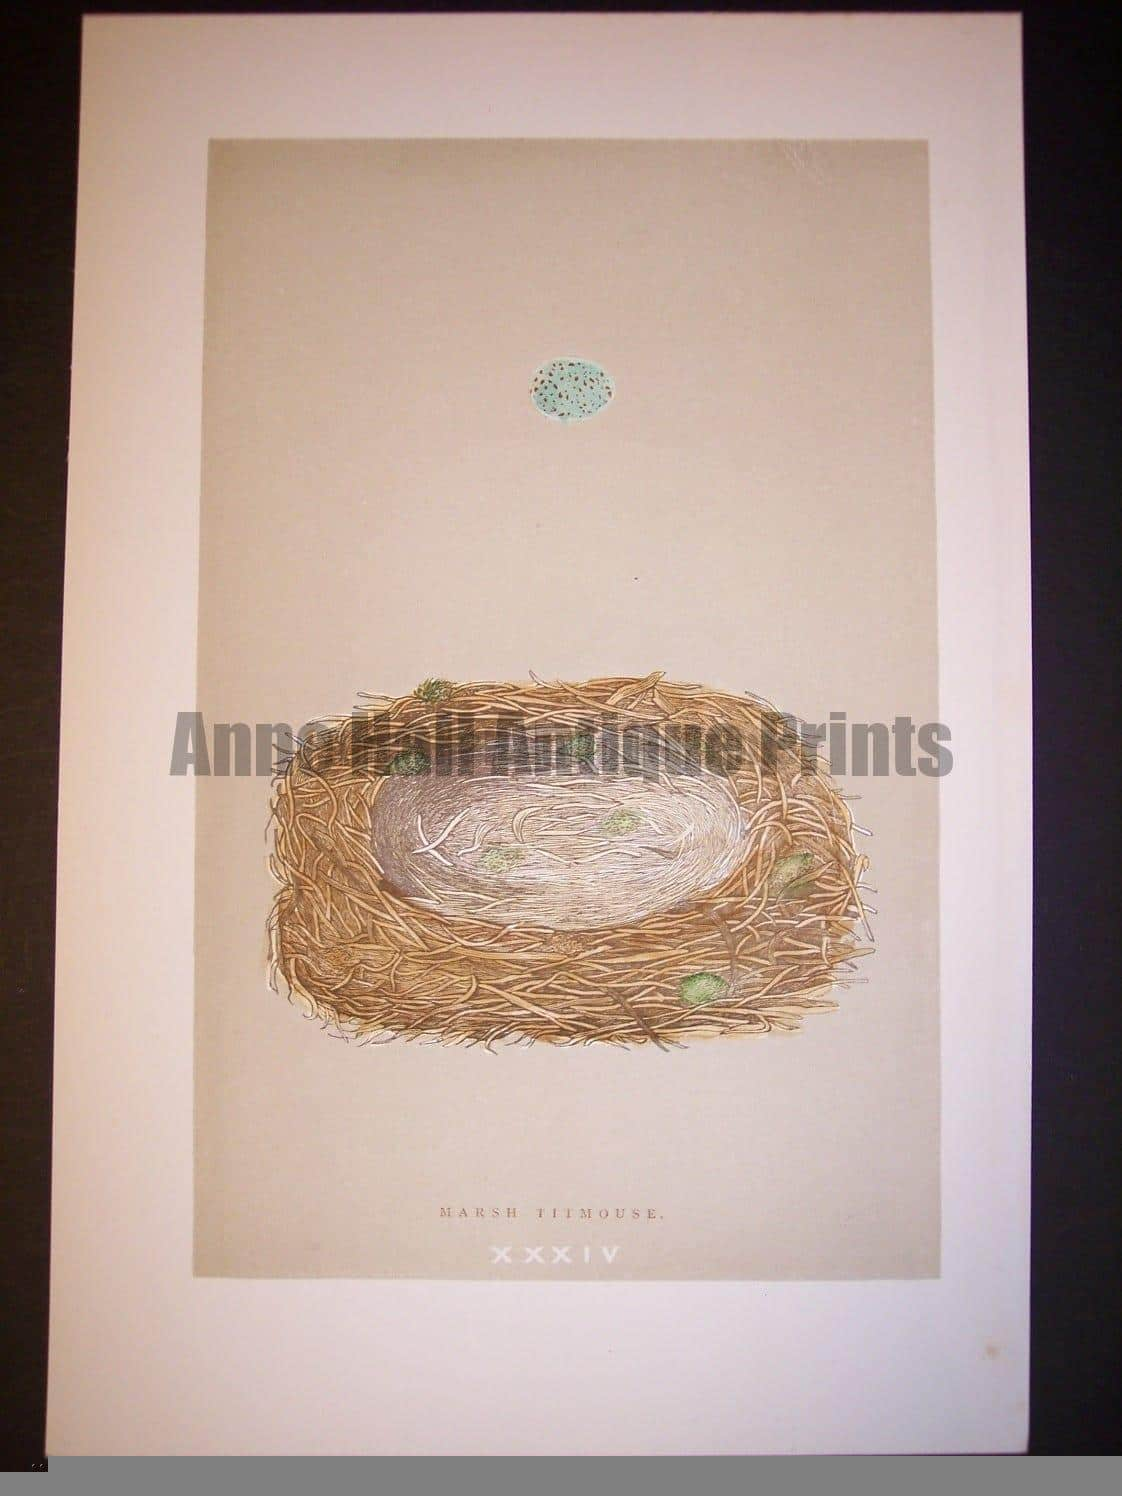 Reverend Morris Birds Nest Print  from 1890  #9958 Click here to buy now.